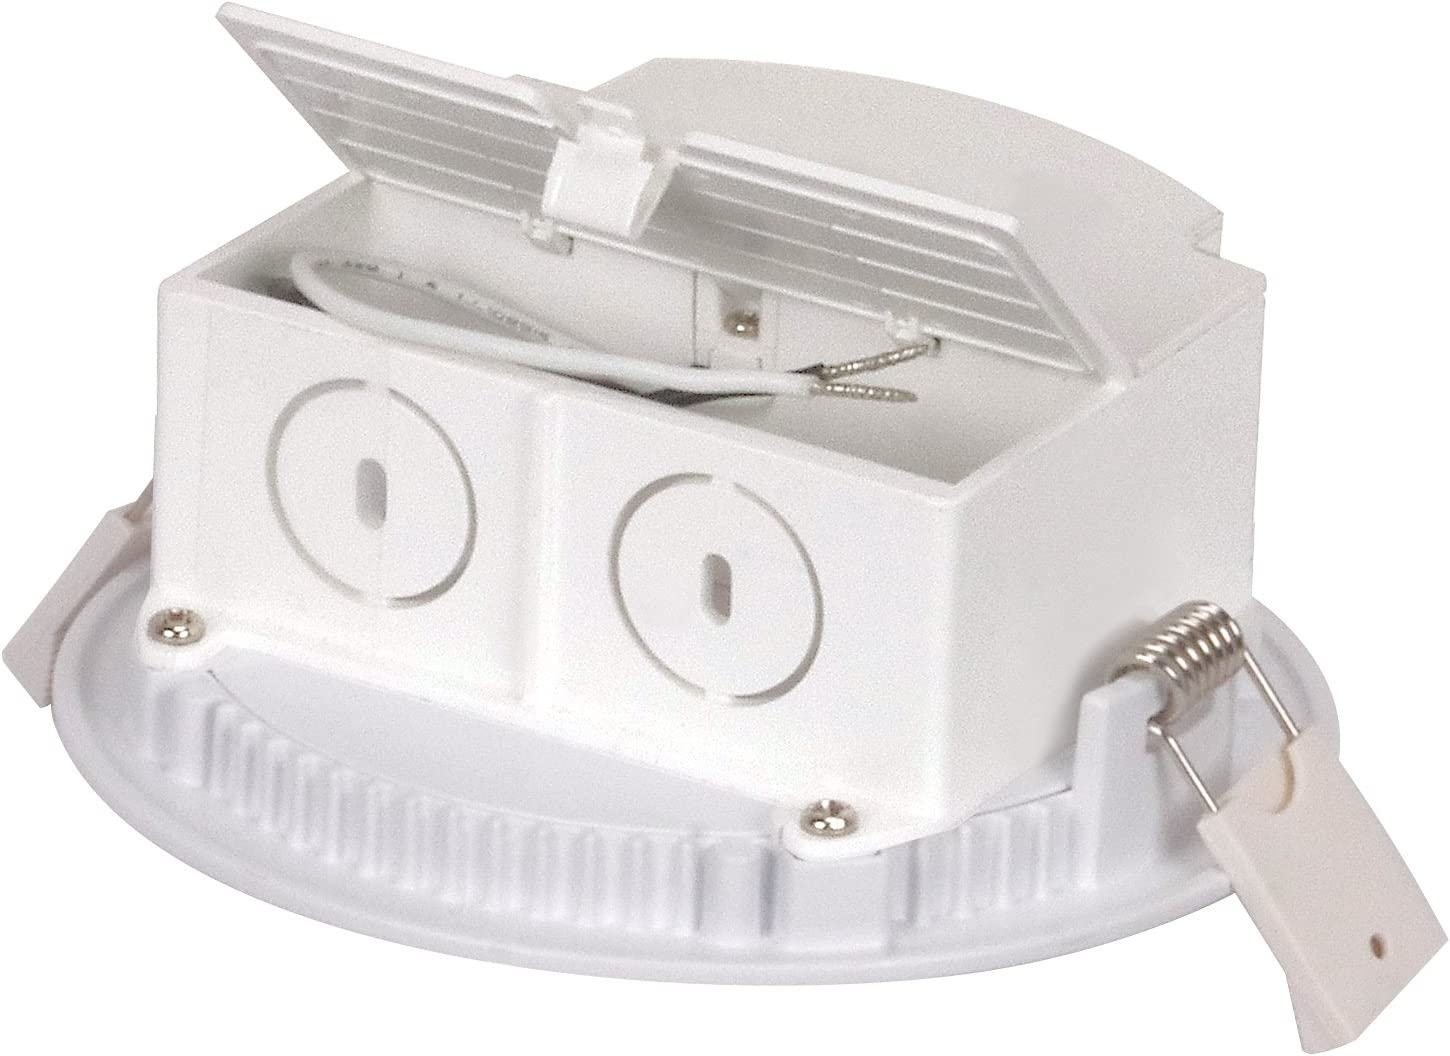 6 inch Low Profile Satco S9061 LED Edge-Lit Downlight with Integrated IC Rated J-Box for Direct Wire